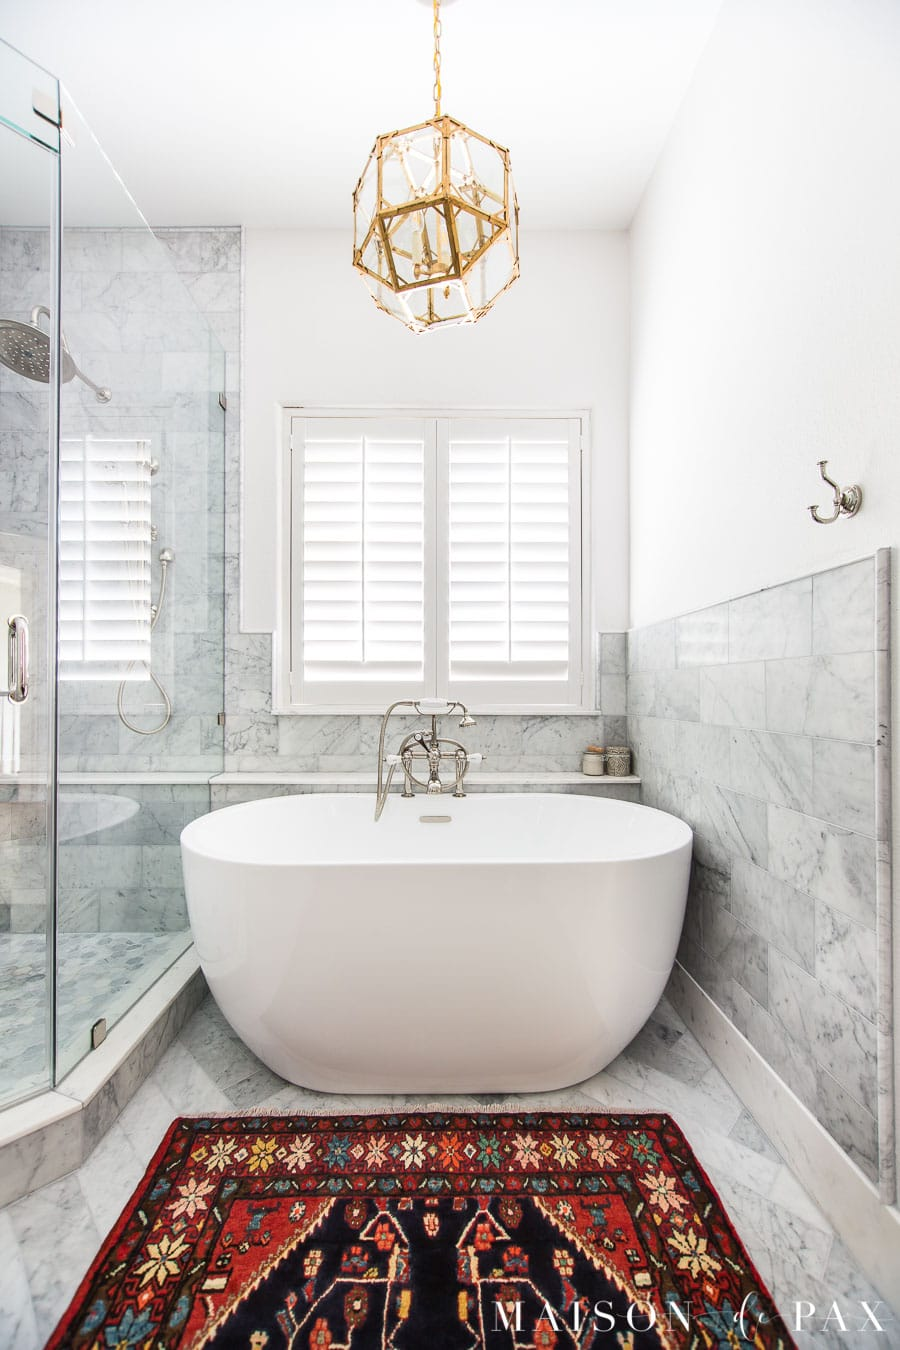 marble bathroom with white freestanding transitional tub and vintage rug | Maison de Pax